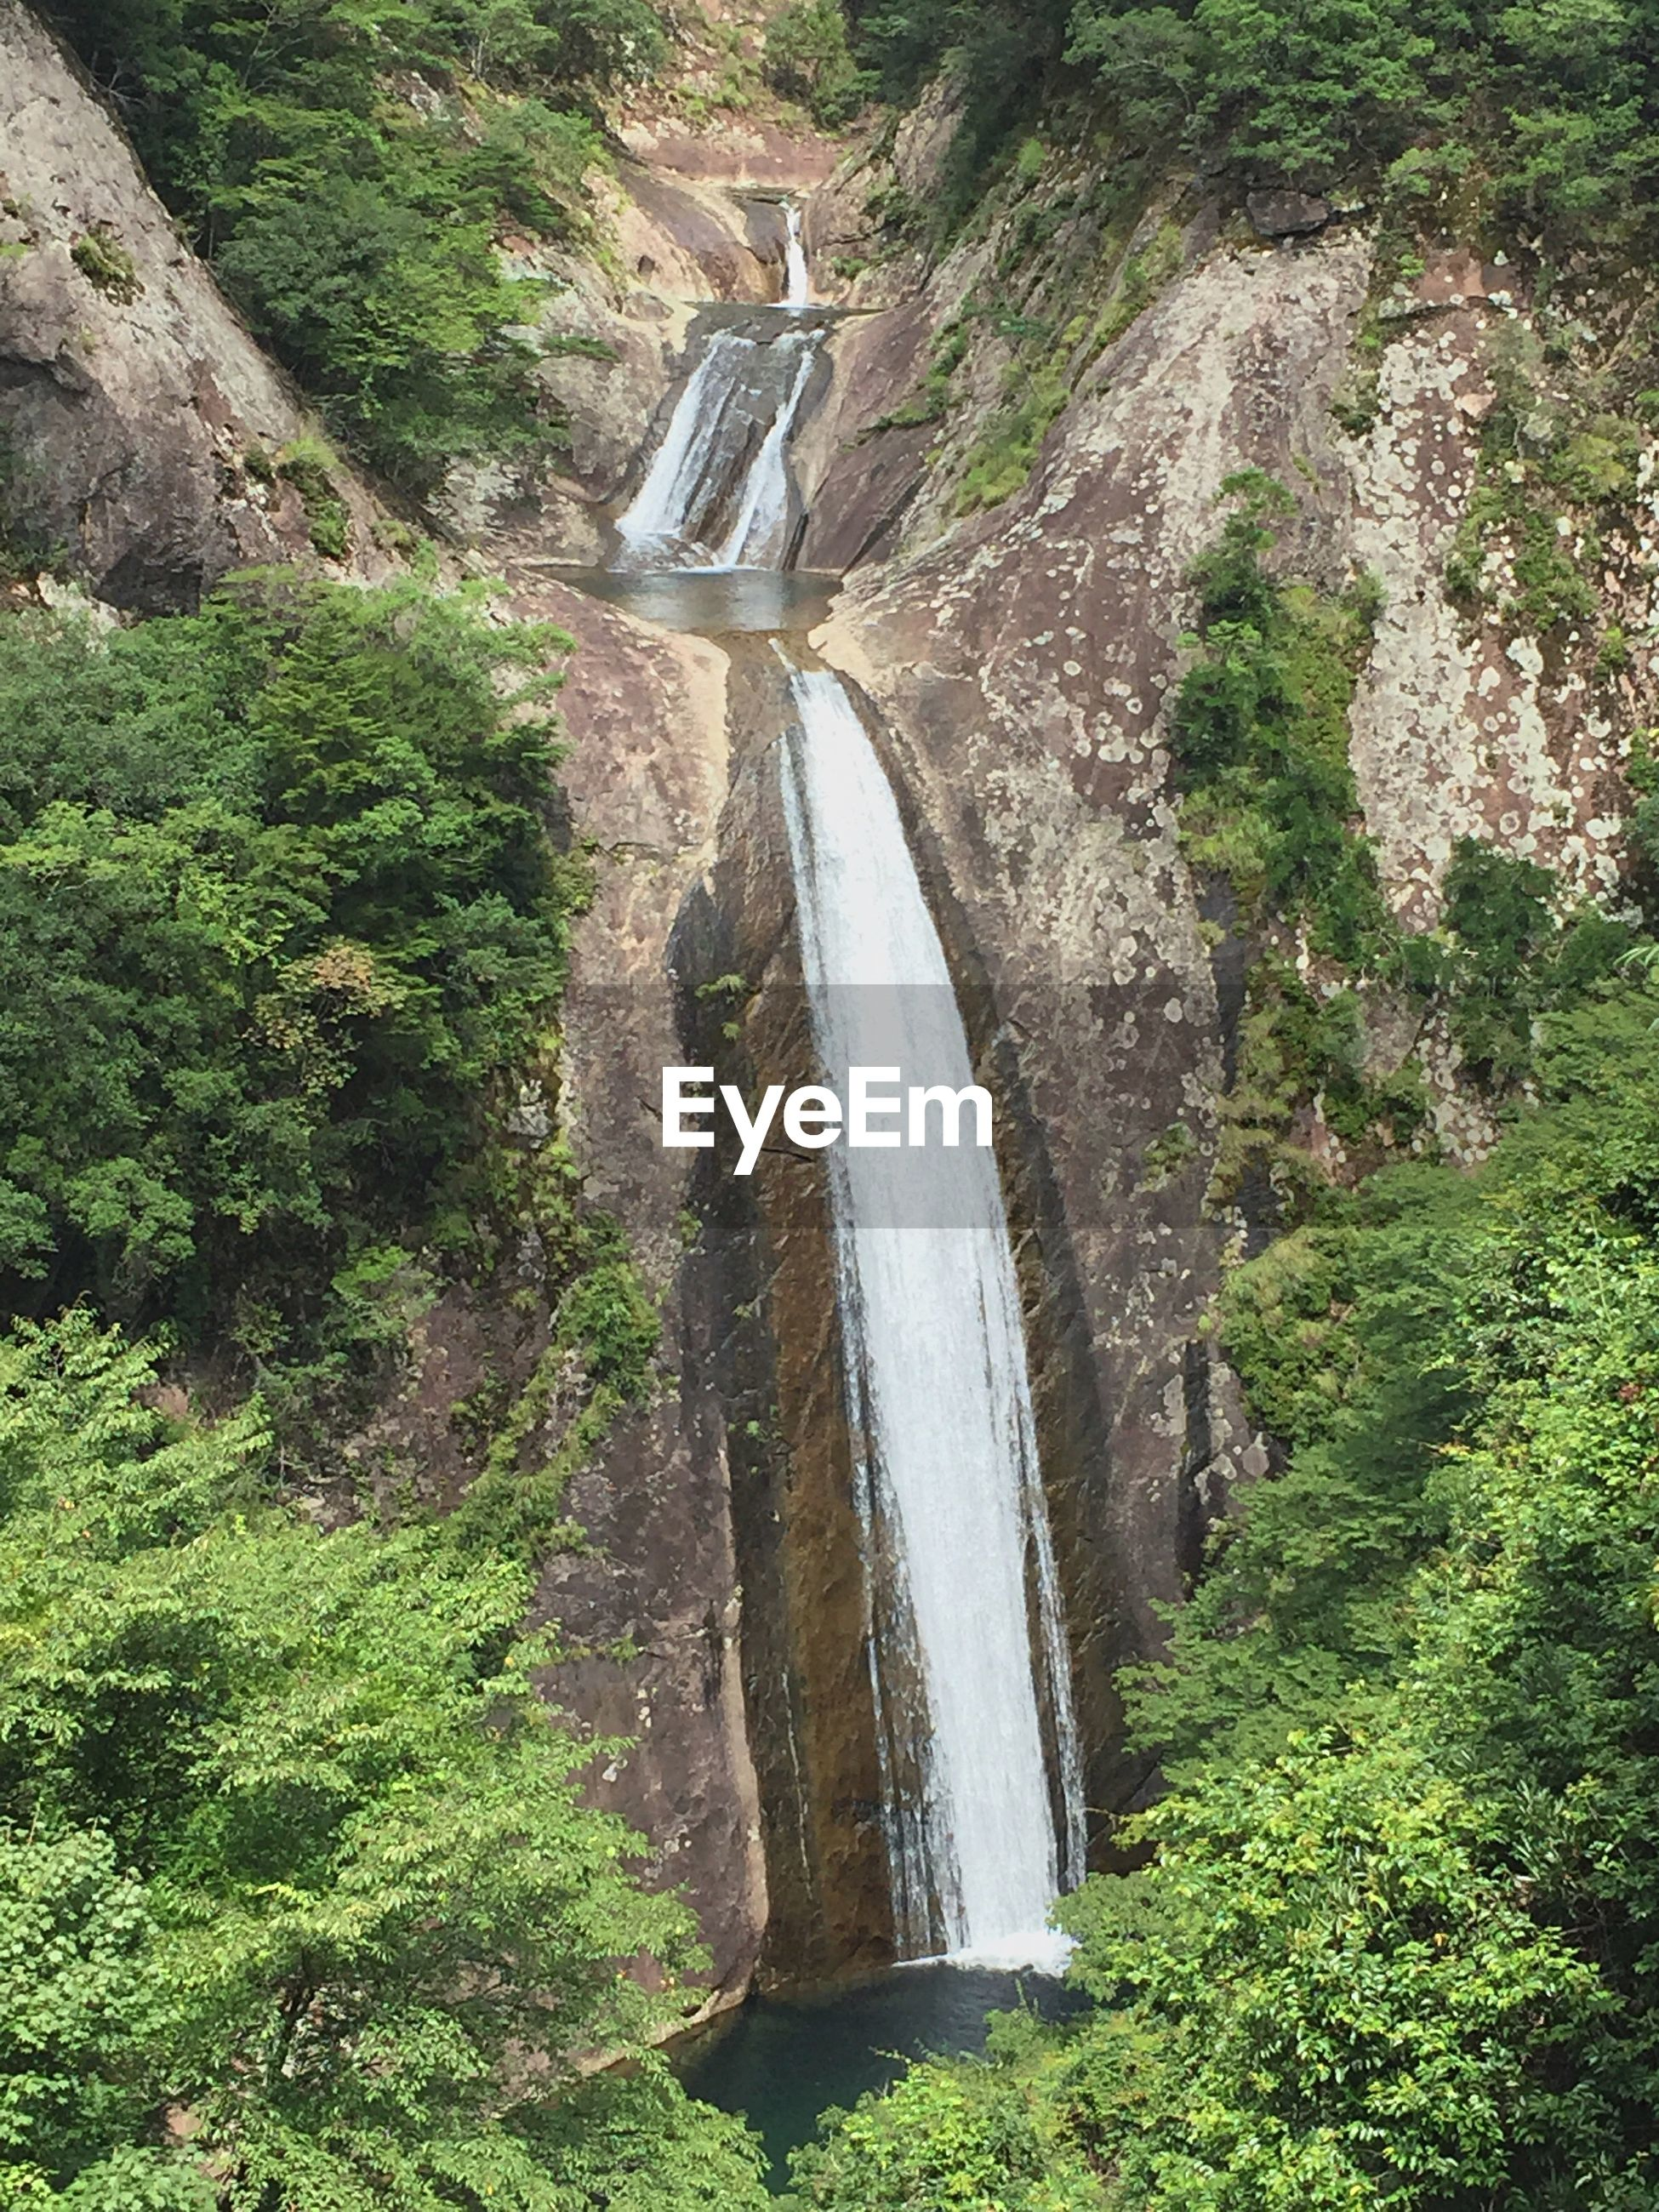 SCENIC VIEW OF WATERFALL BY MOUNTAIN